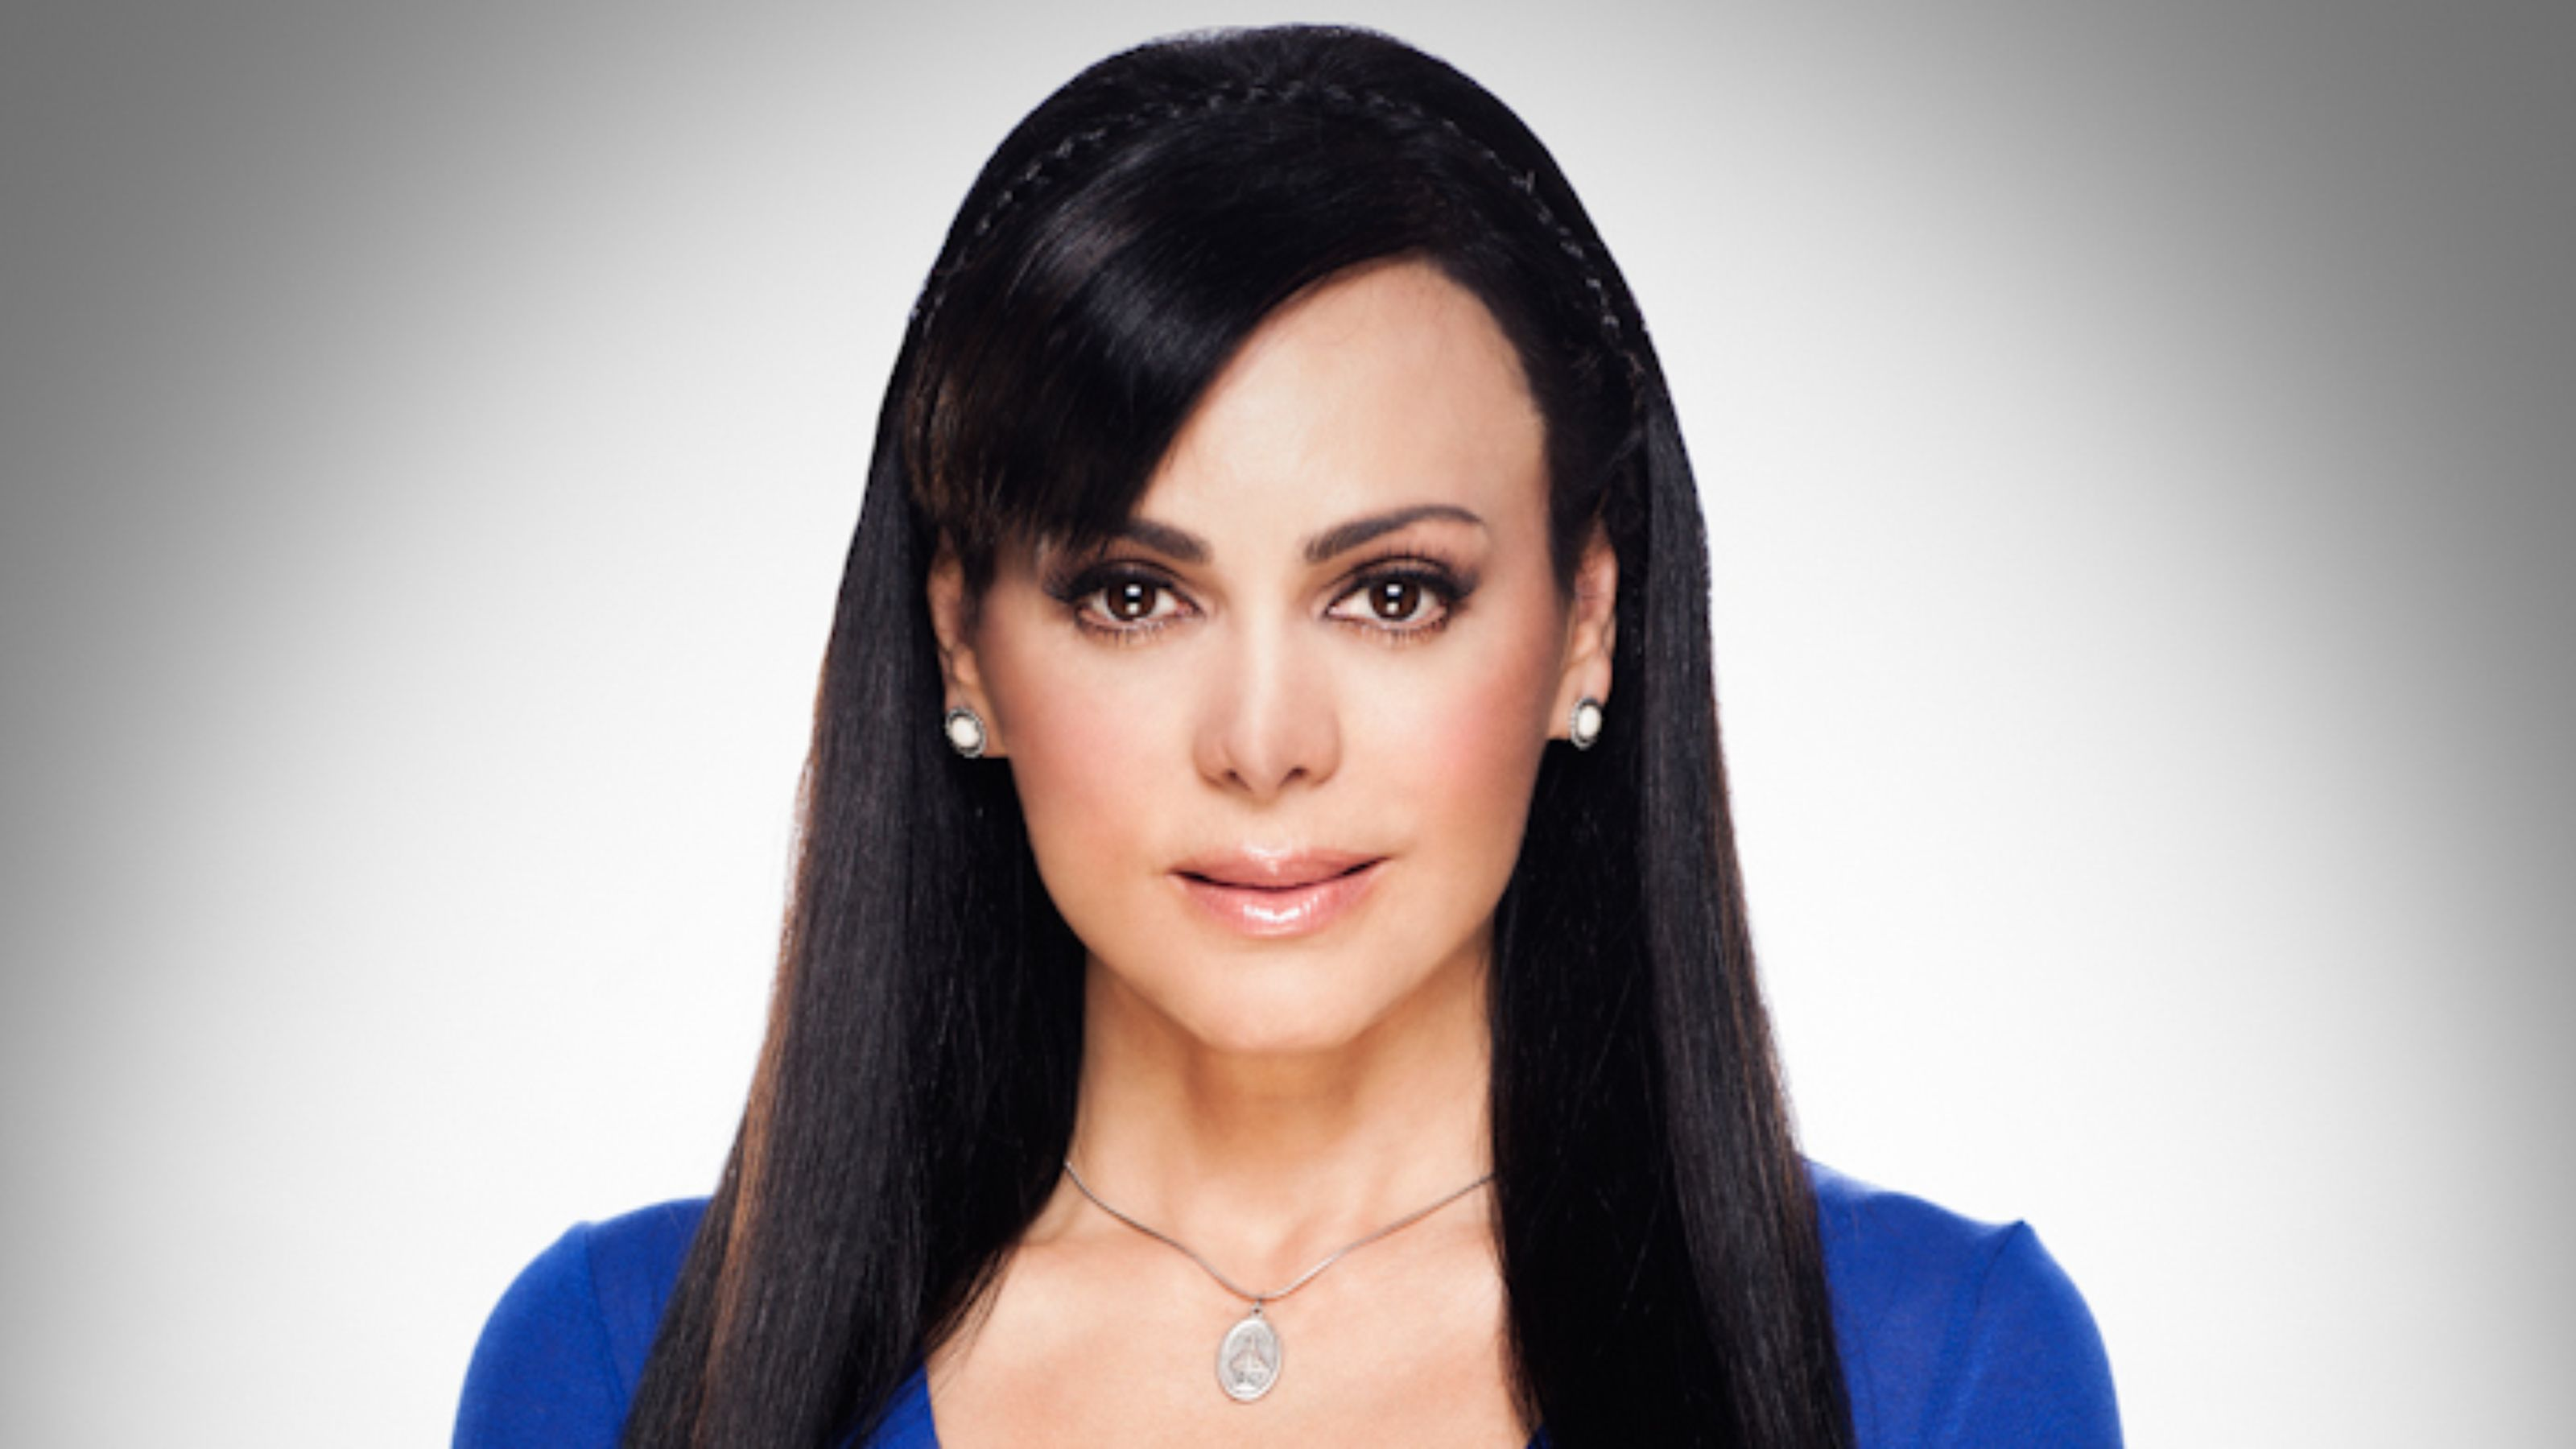 Fotos De Maribel Guardia additionally Audrey Hepburn Photo as well 4mN0qcMxWX8oToqfDPM5yV besides La India together with Cuba Caribbean Island Musical Septettes. on celia cruz